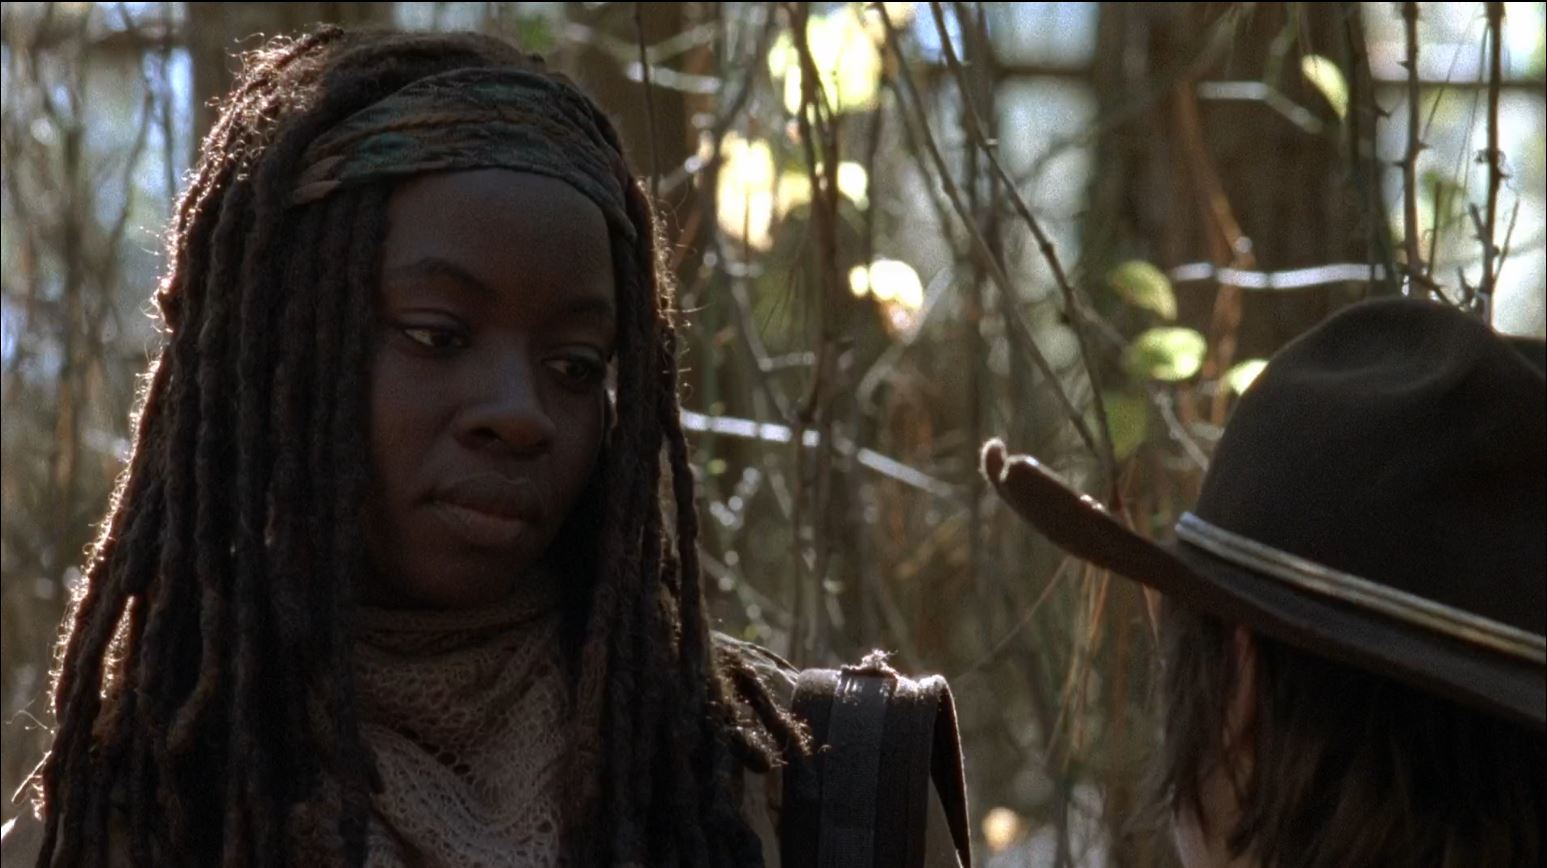 The Walking Dead season 4 finale -Michonne telling Carl what happened to her kid